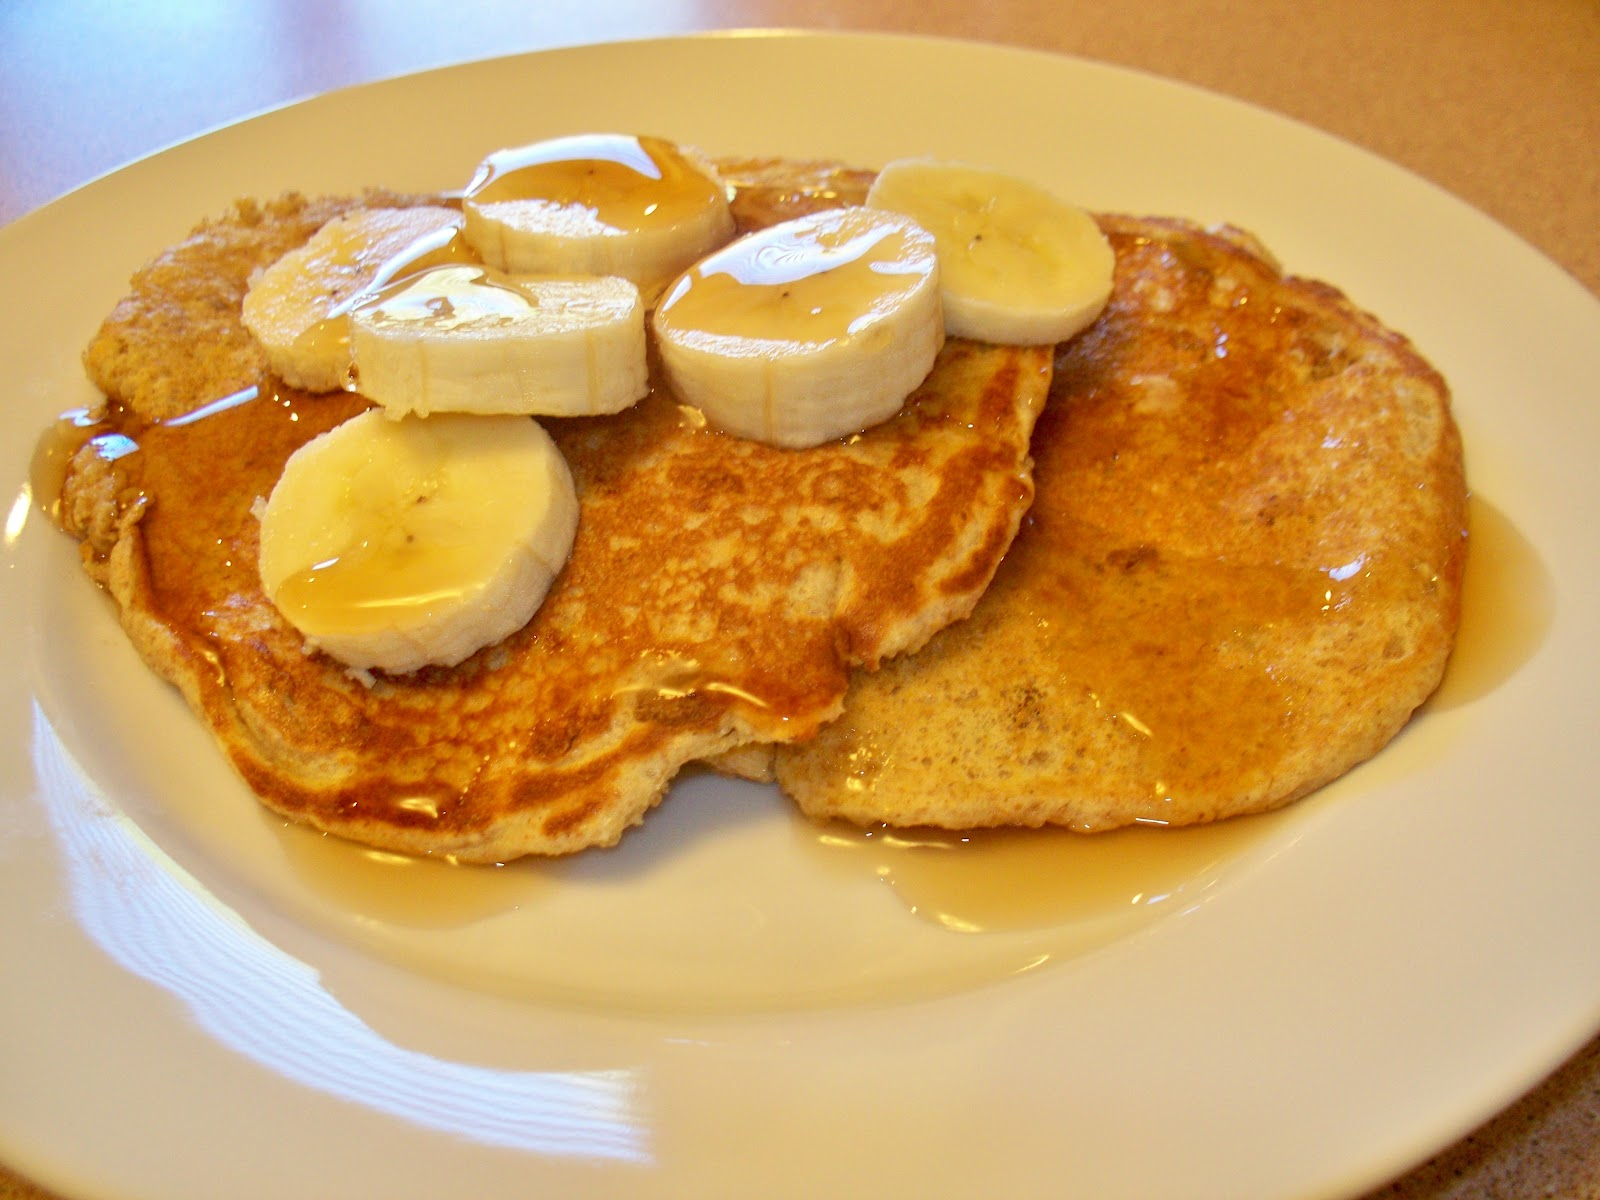 ... mood for some healthy banana nut pancakes for breakfast this morning